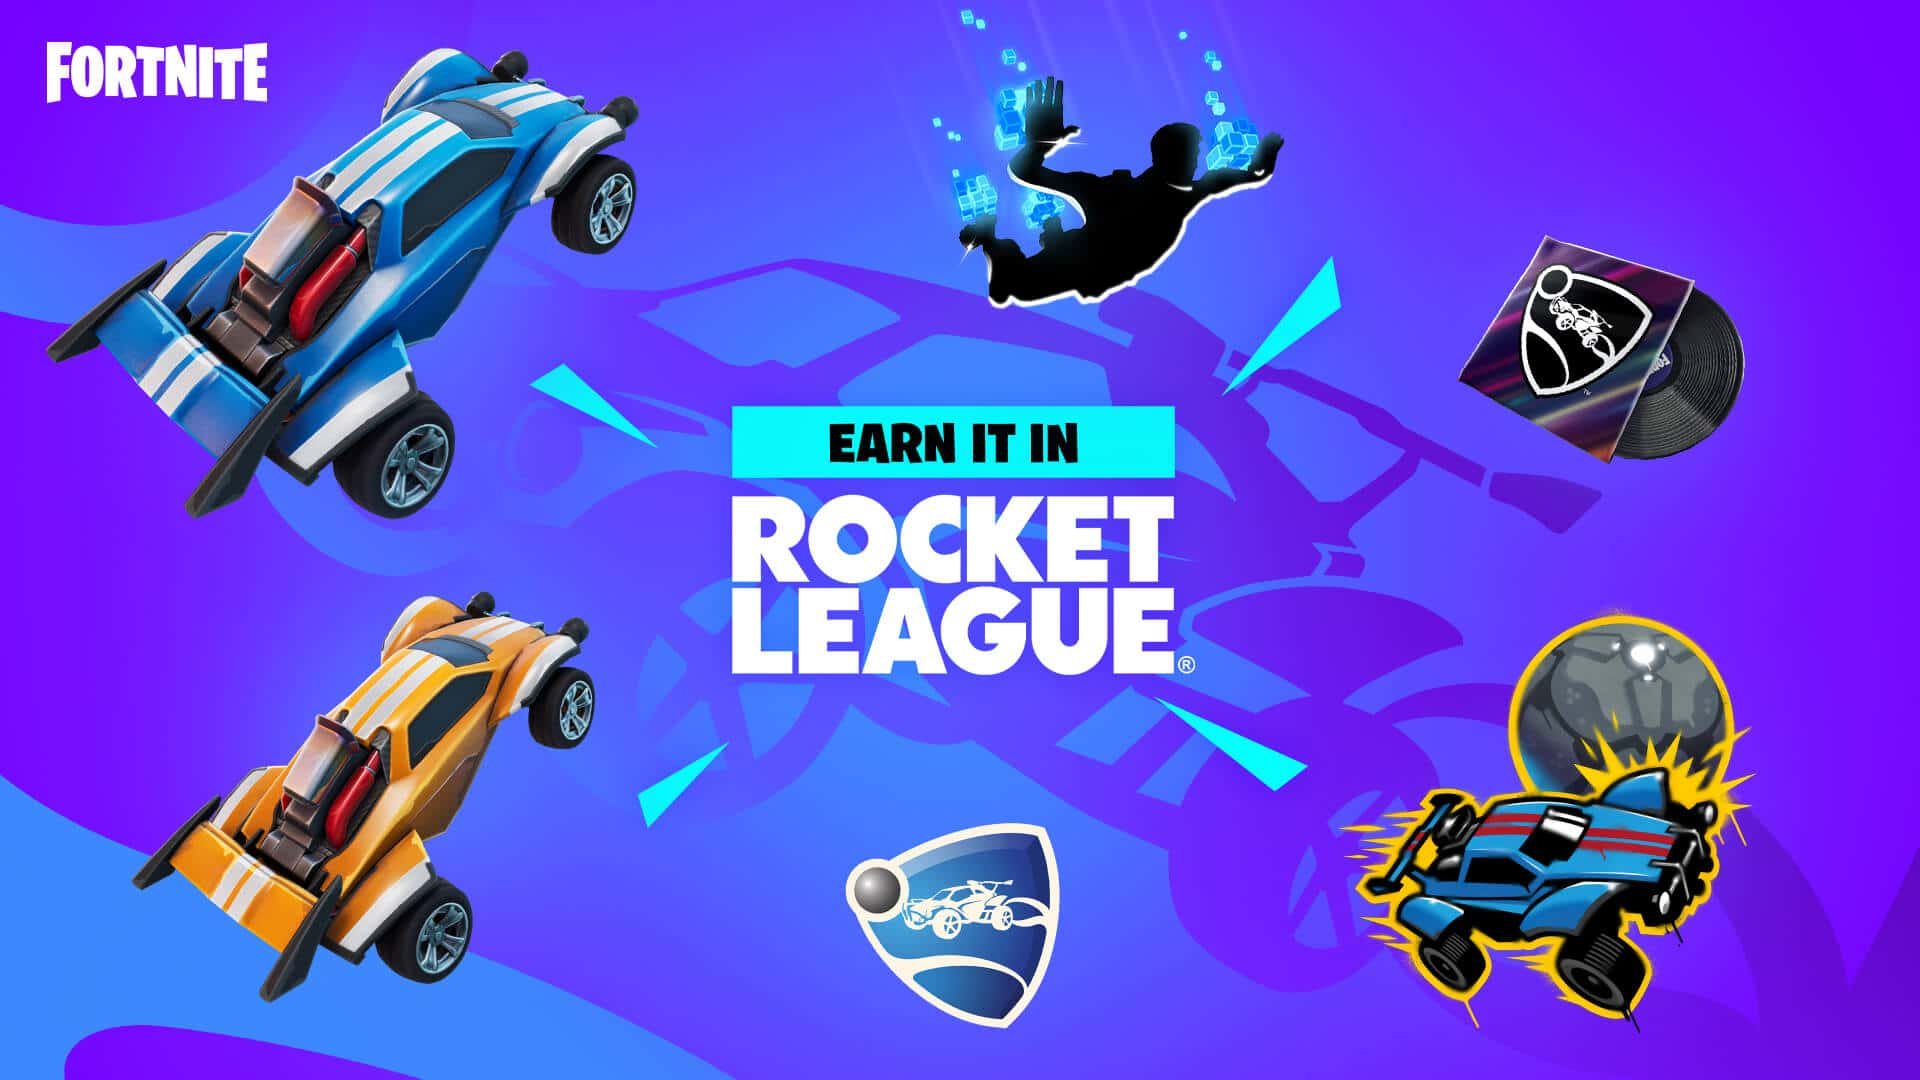 Fortnite x Rocket League Rewards